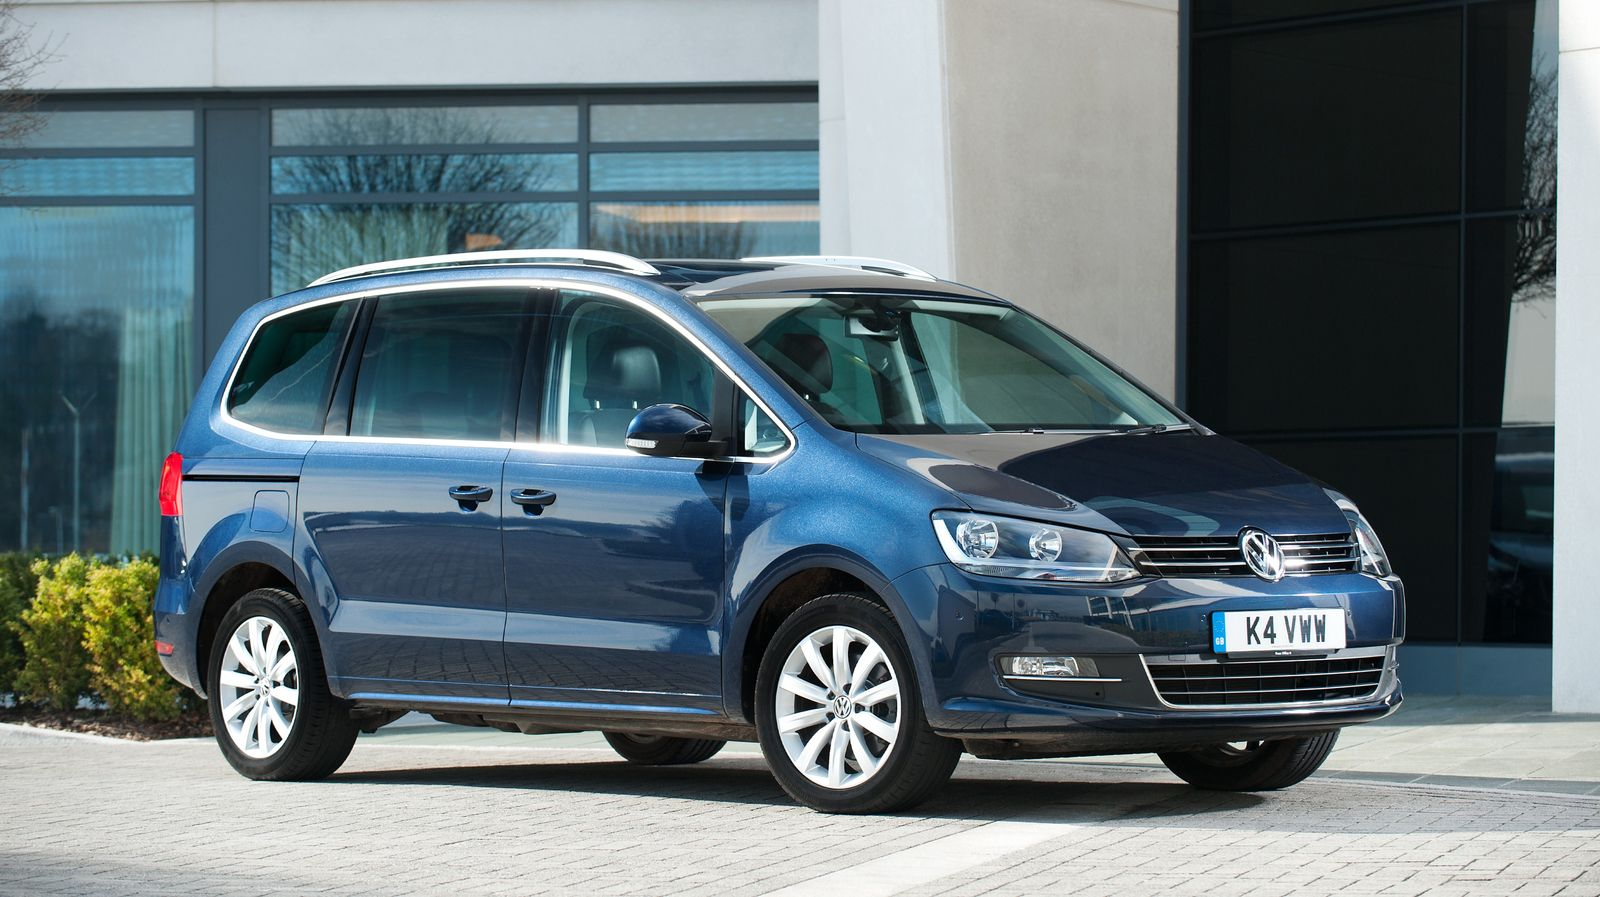 Best 7-Seater Cars Compared – 2015